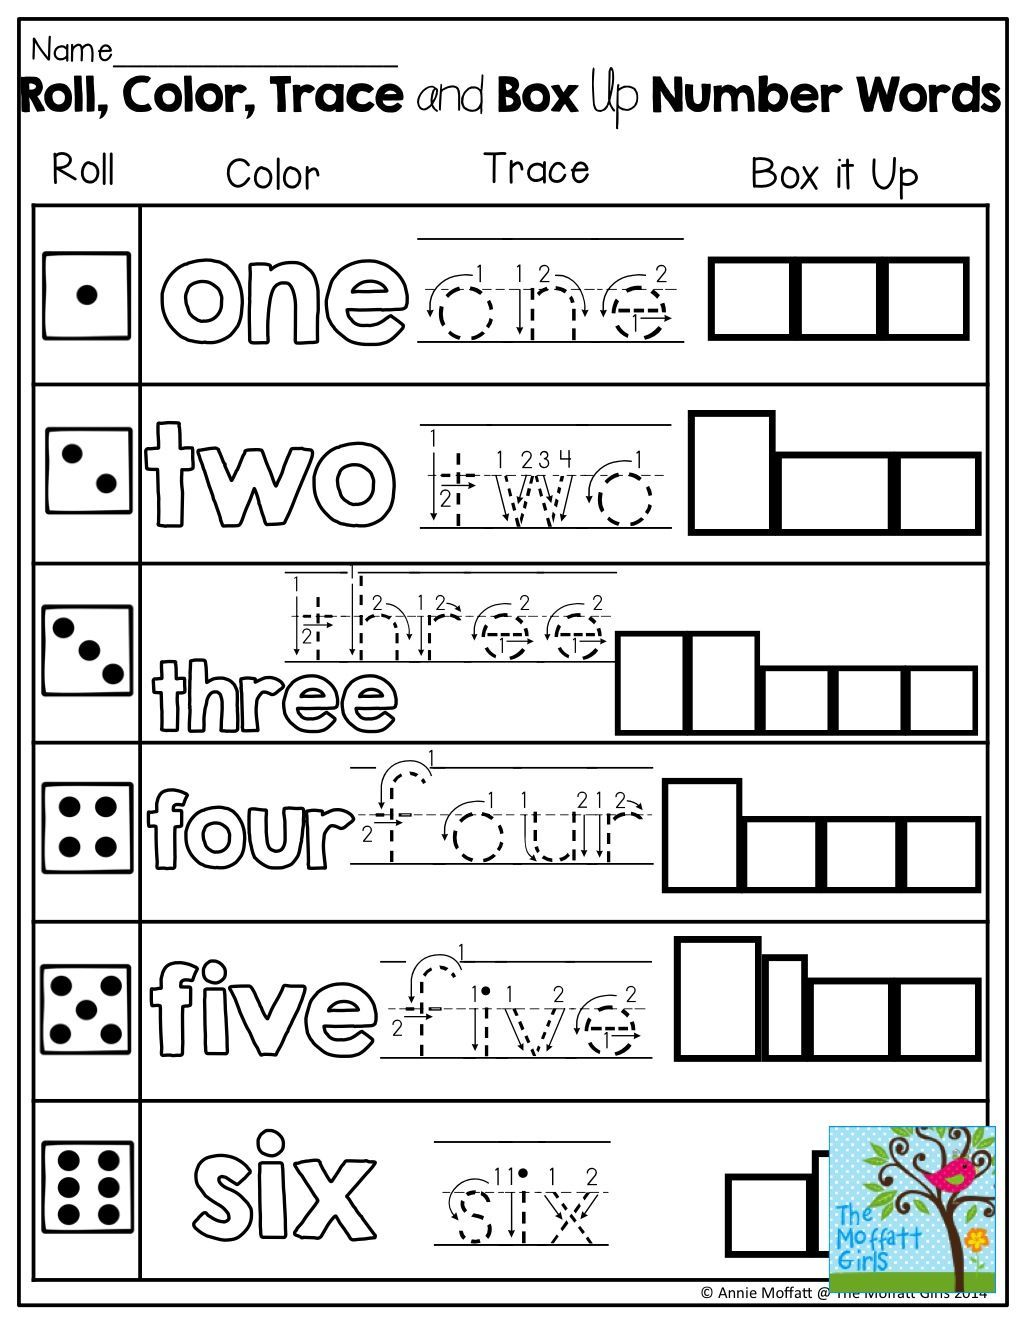 Roll A Trace The Number And Box It Up A Fun Way To